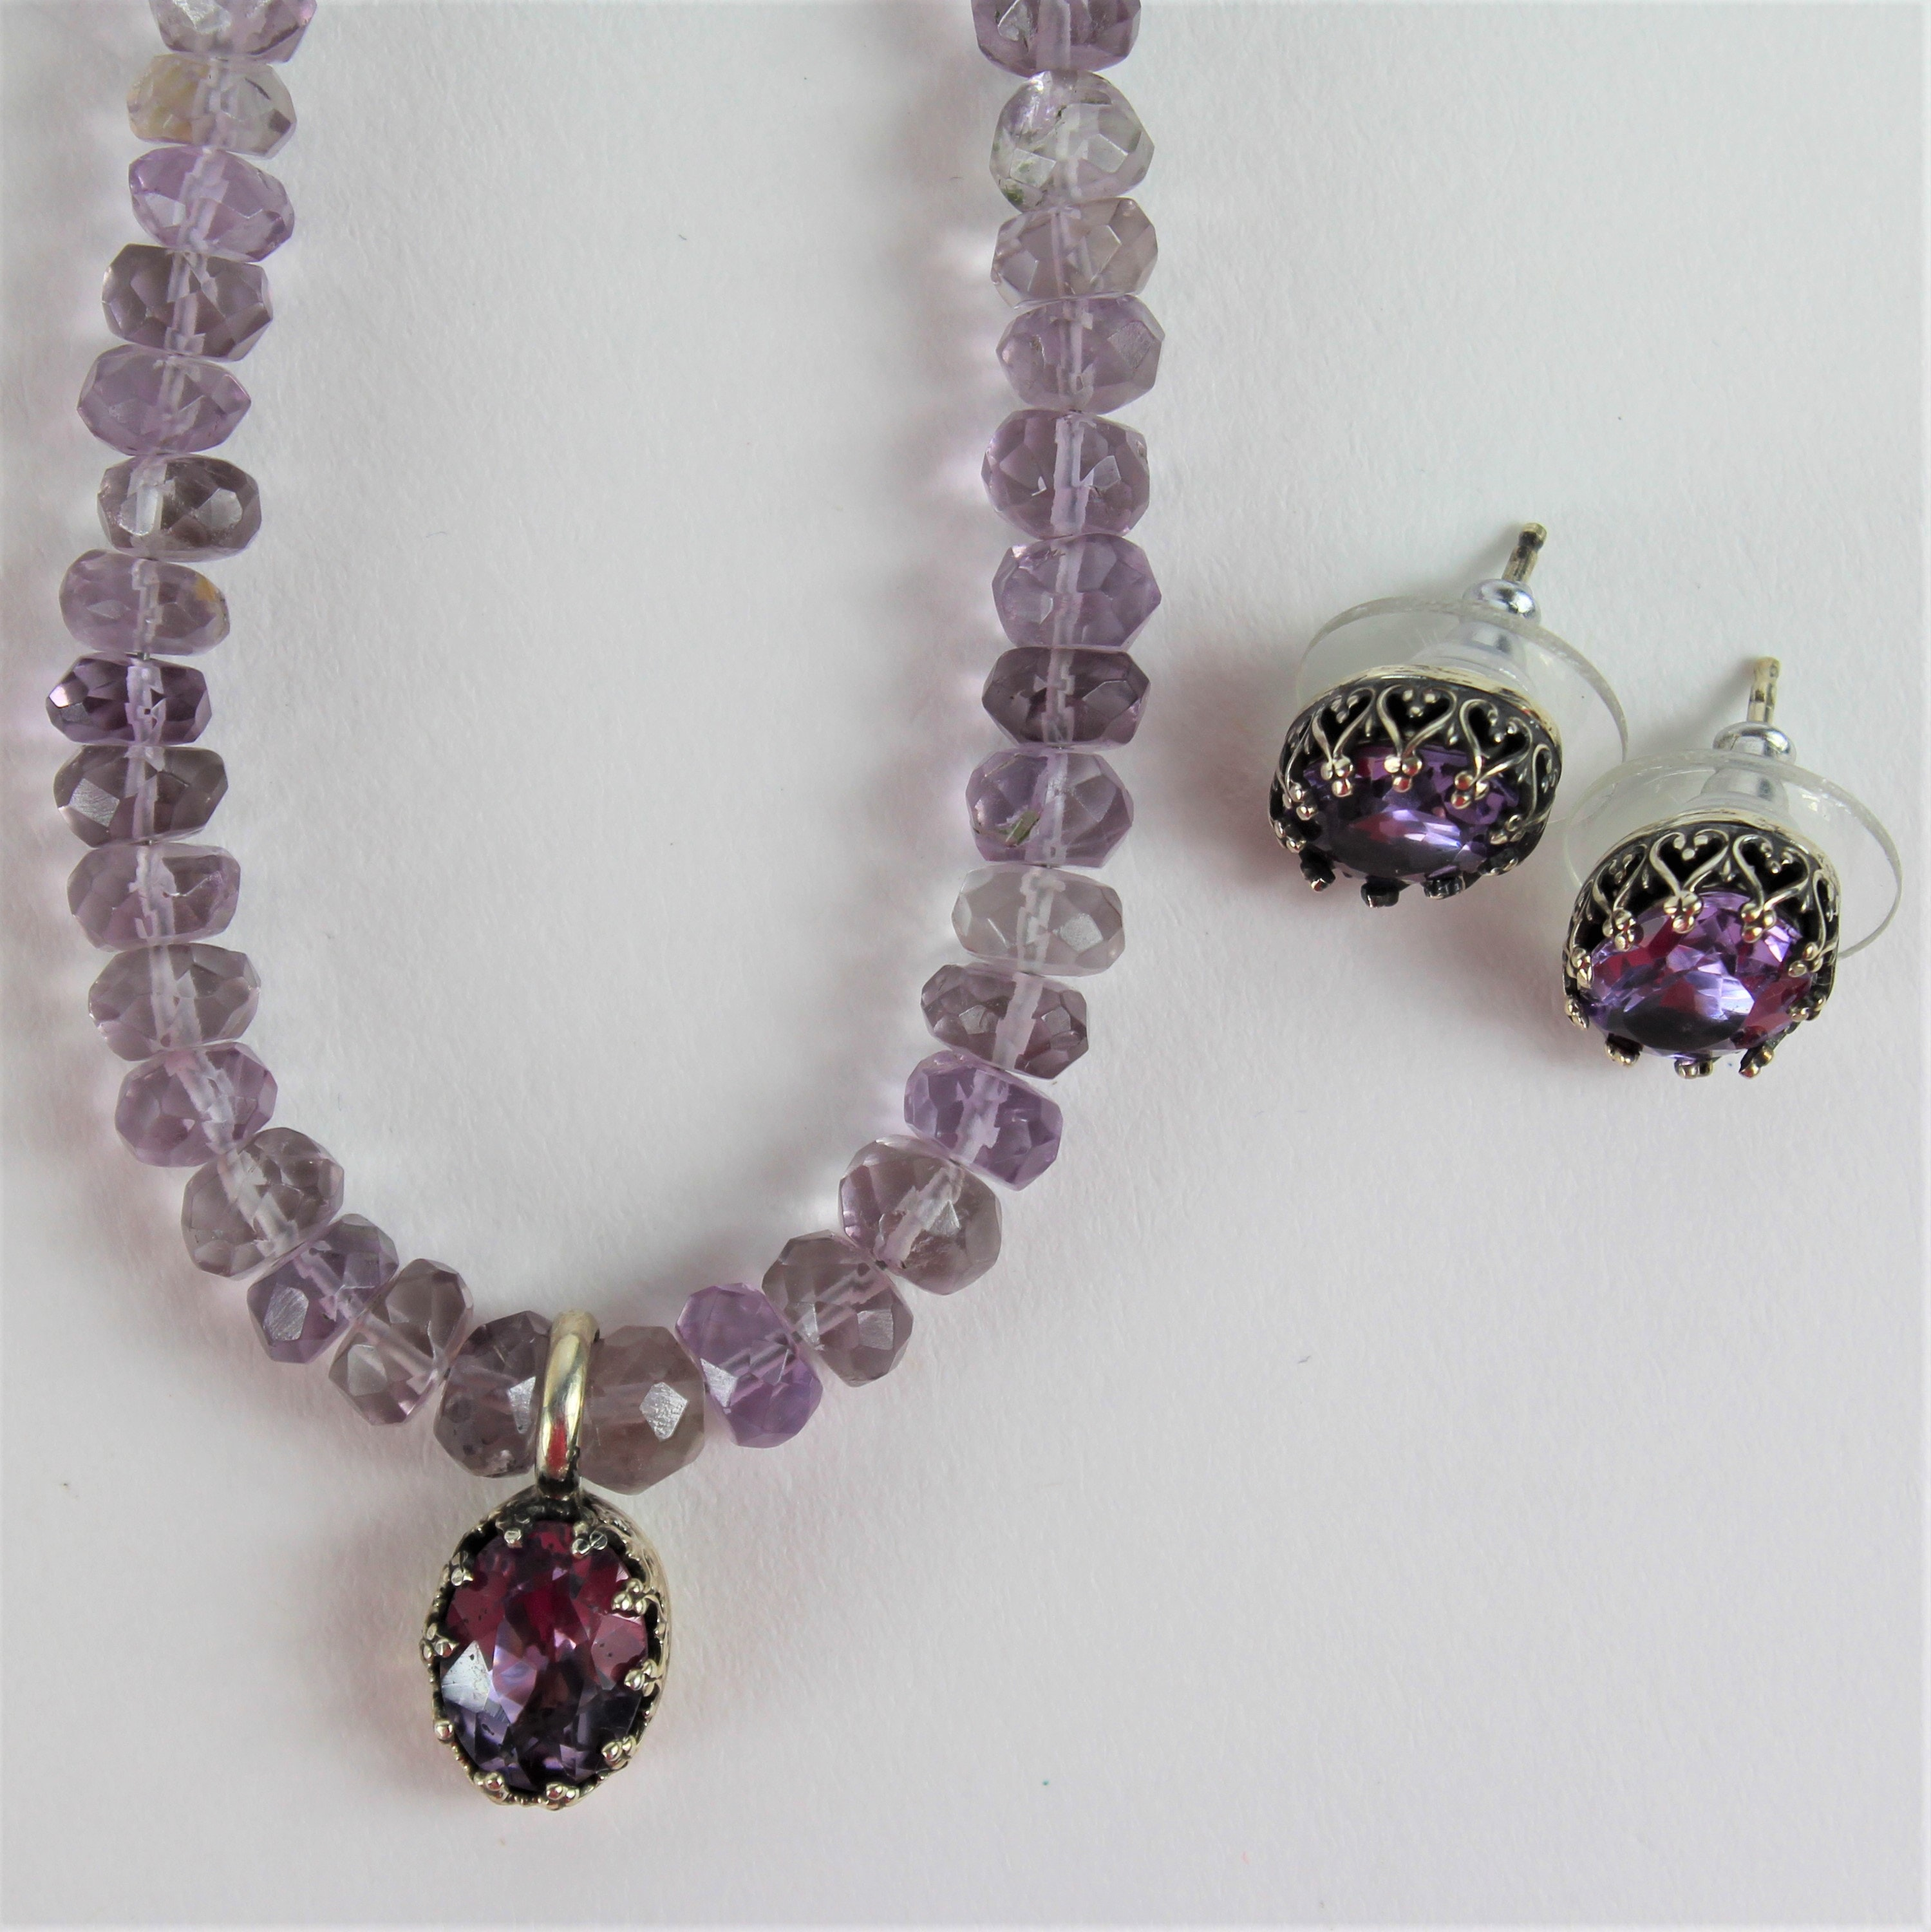 Artist Created Lavender Cubic Zirconia Sterling Silver Necklace & Earrings